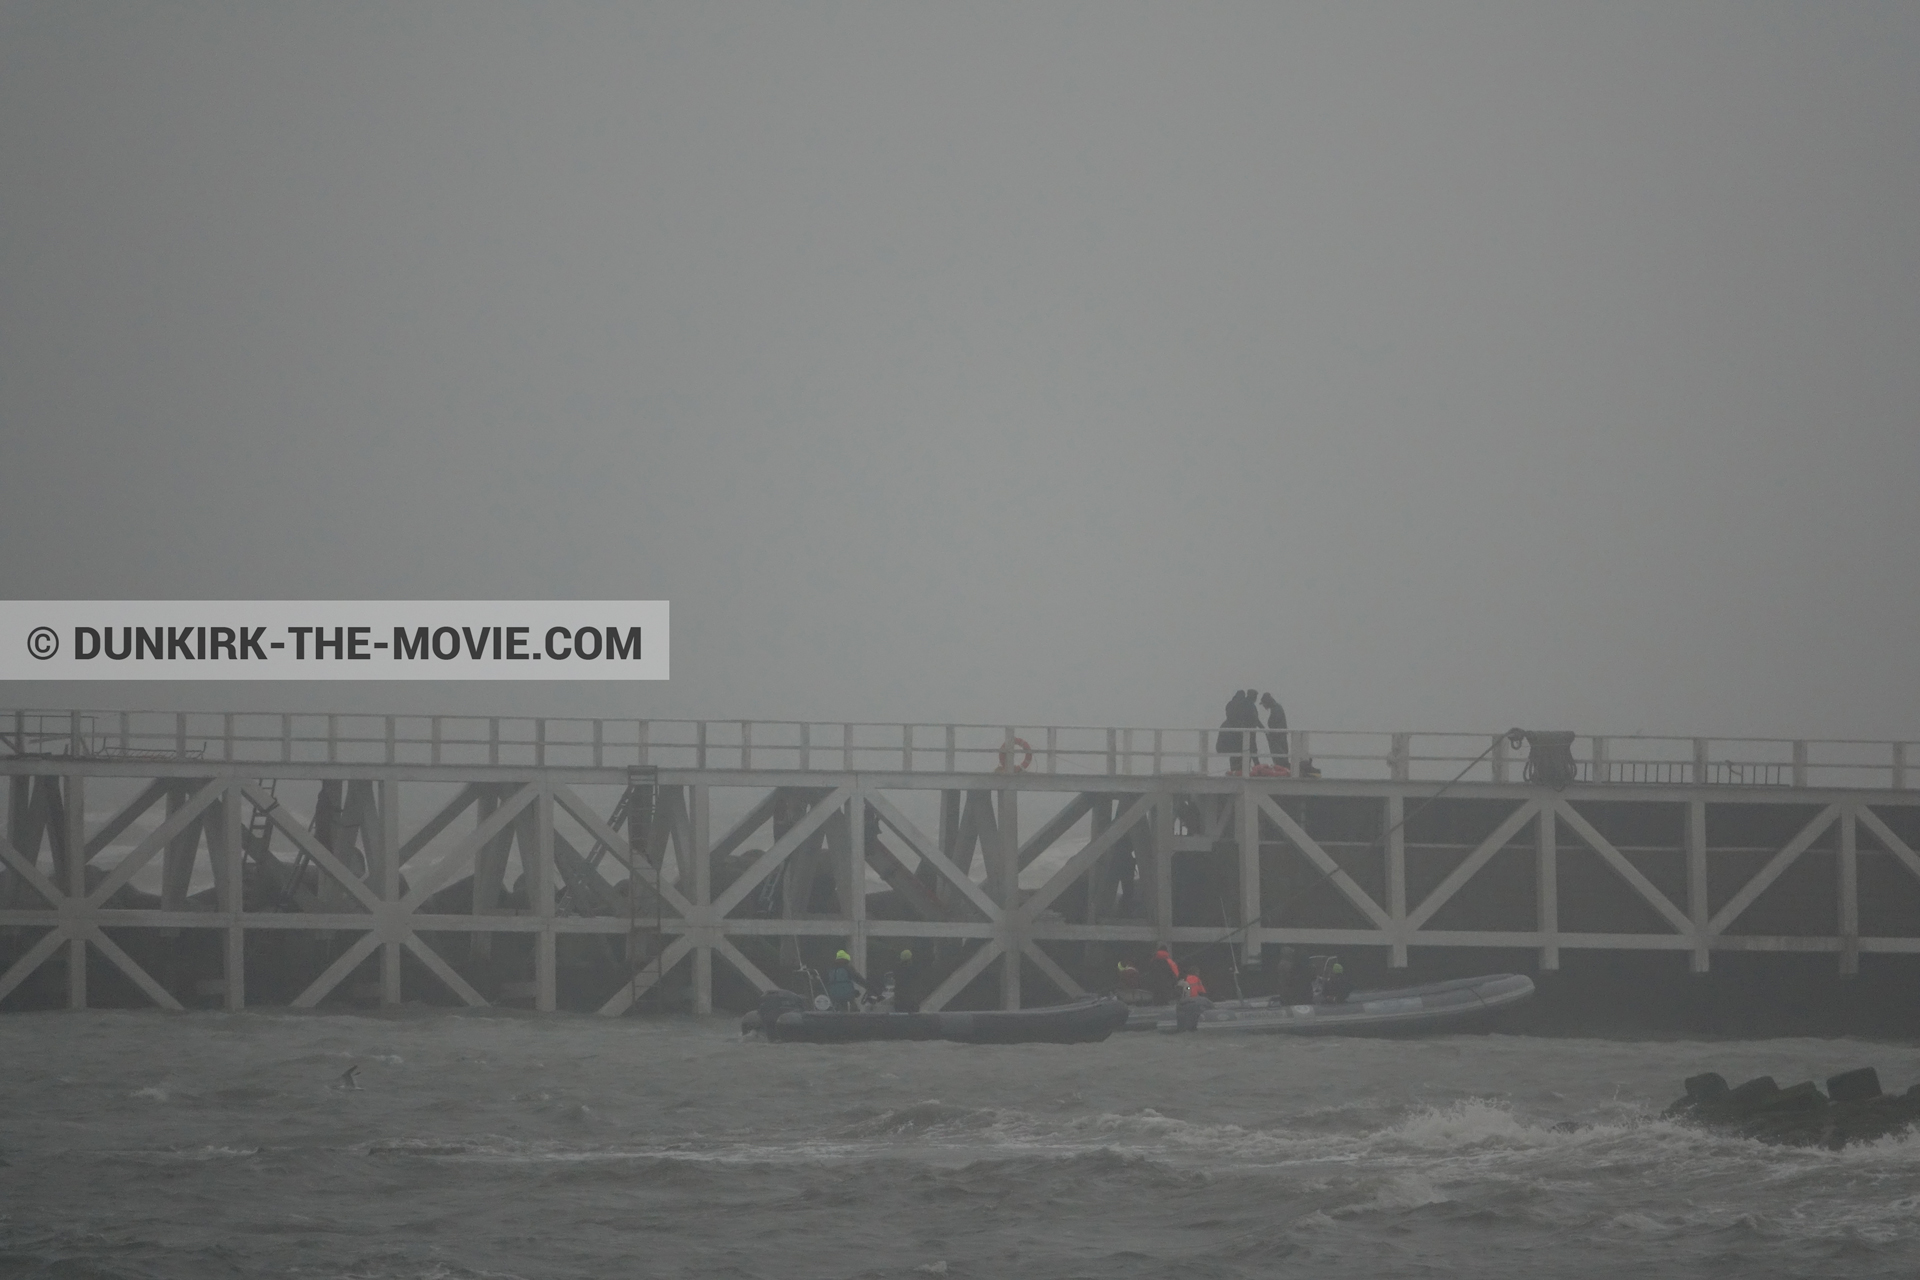 Picture with grey sky, EST pier, rough sea, inflatable dinghy,  from behind the scene of the Dunkirk movie by Nolan